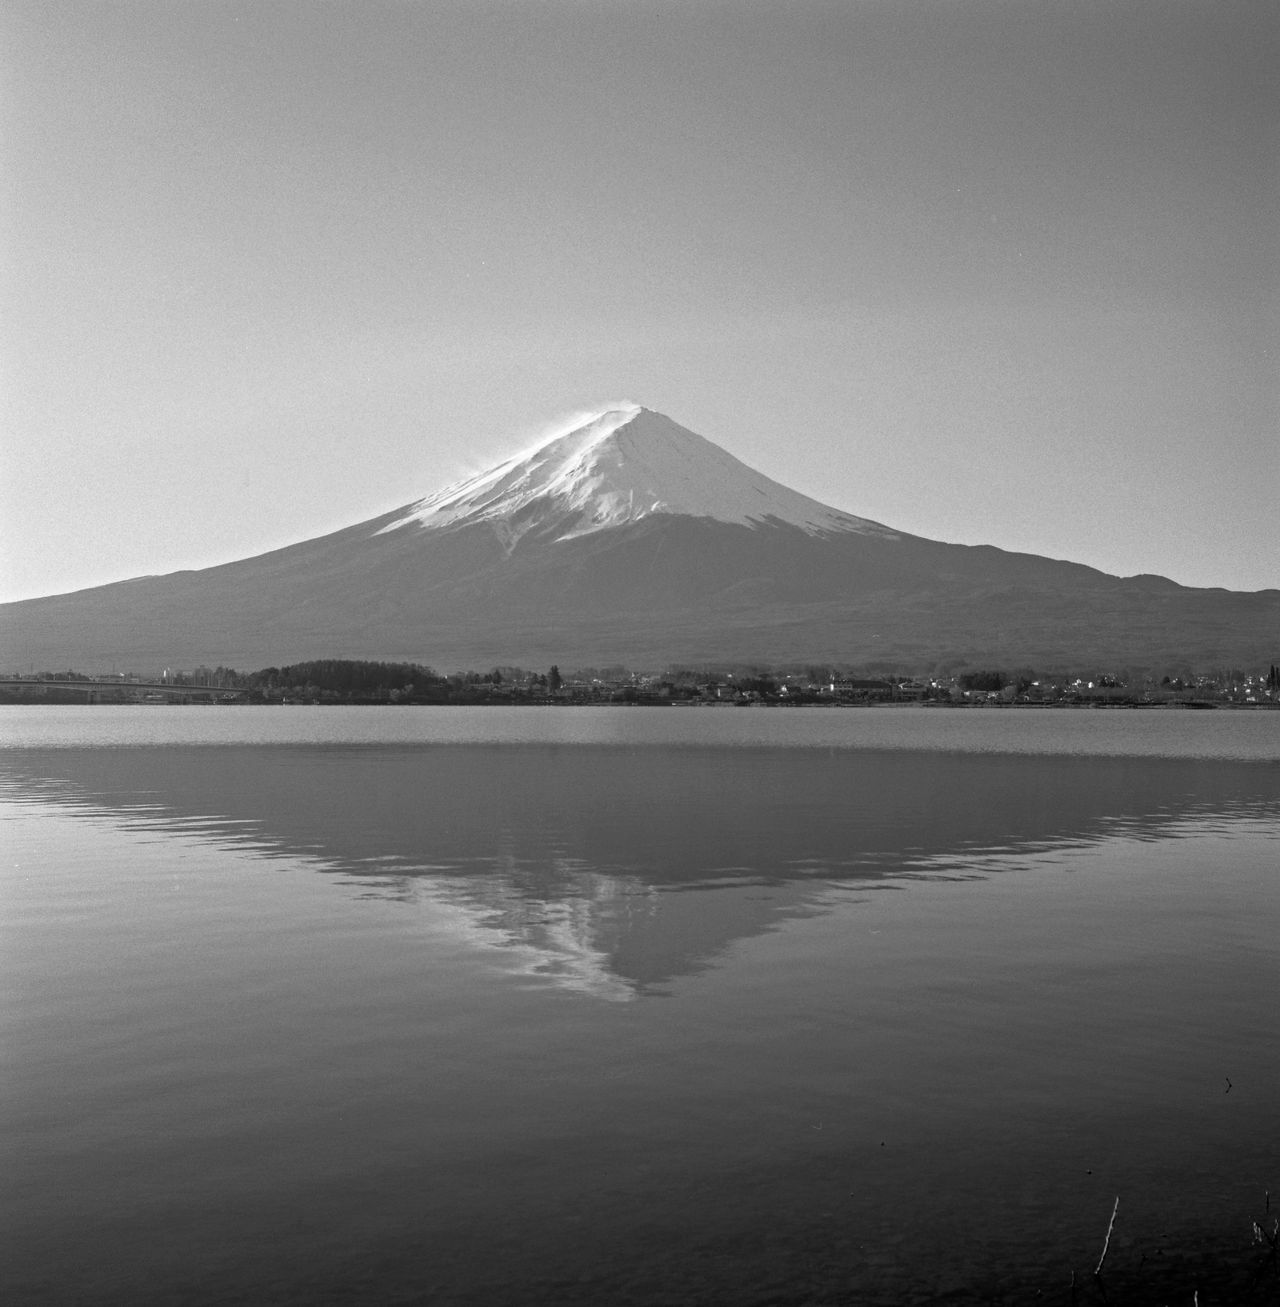 Beauty In Nature Black And White Clear Sky Film Film Photography Filmisnotdead Fujisan Japan Japan Photography Lake Lake View Lakeside Landscape Landscape_Collection Landscape_photography Mountain Mt.Fuji Nature Nature_collection Outdoors Reflection Scenics Tranquil Scene Tranquility Water Reflections